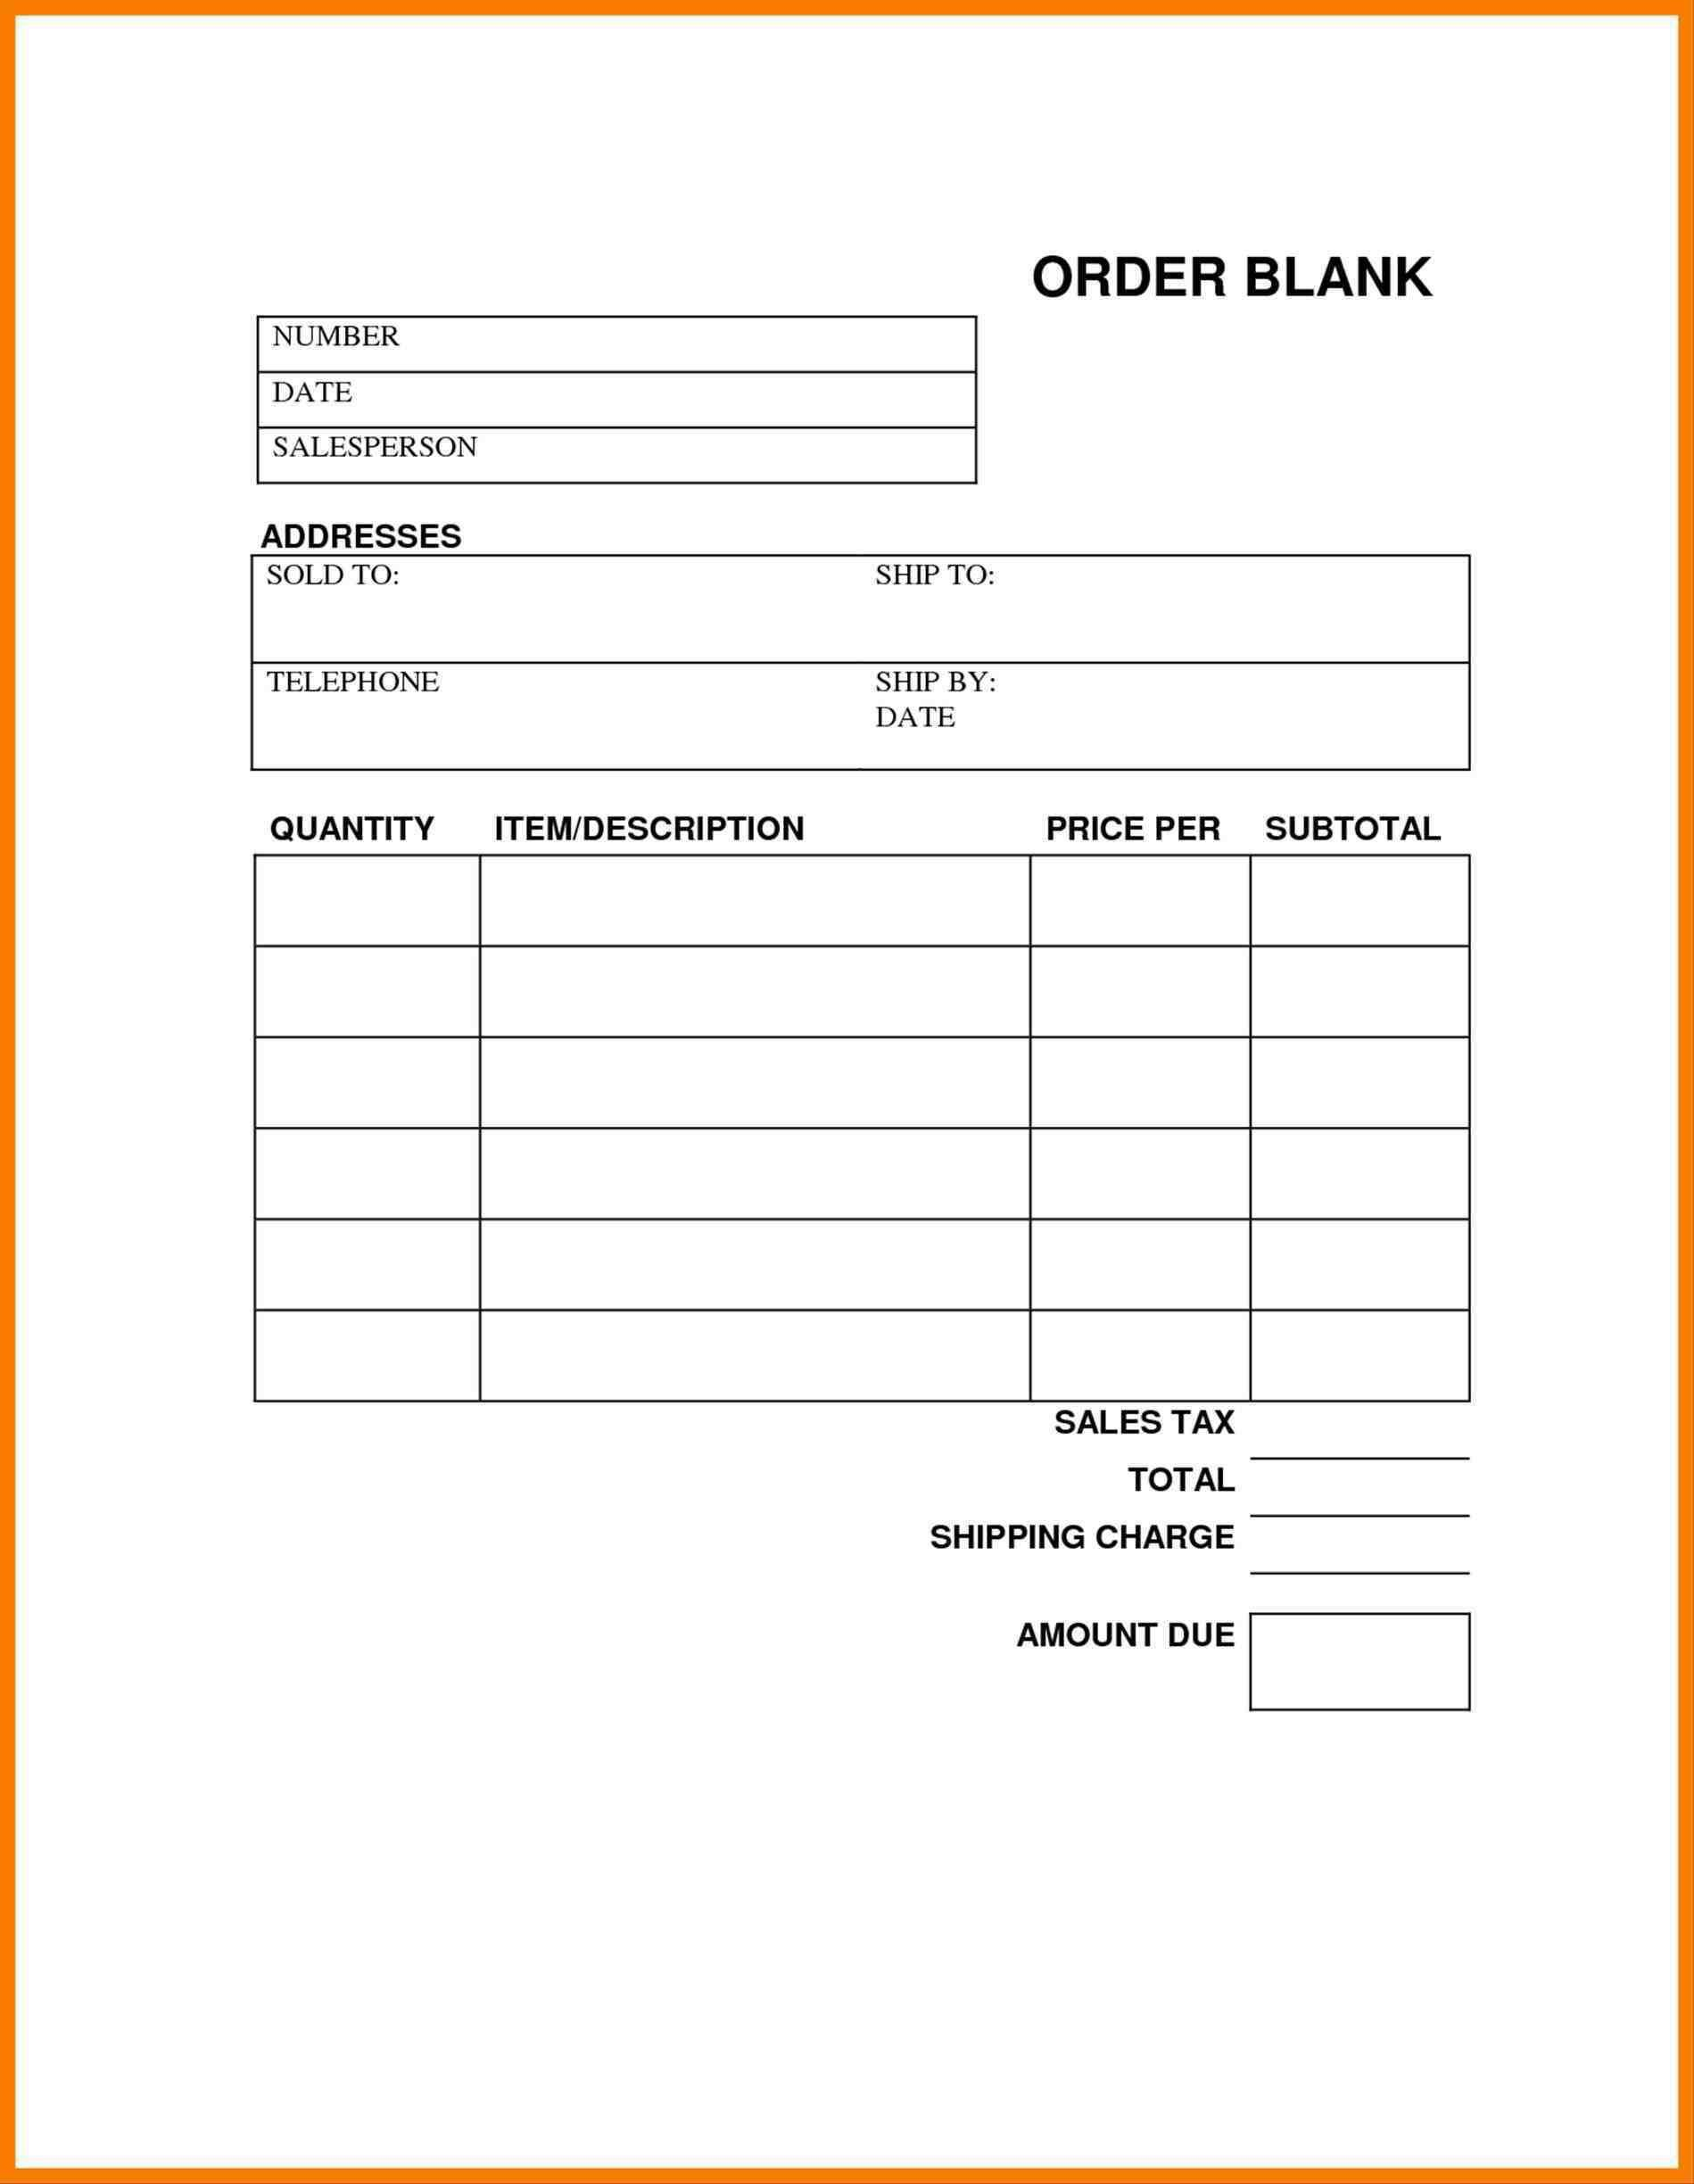 004 Fearsome Order Form Template Free Example  Application Shirt Word CustomFull